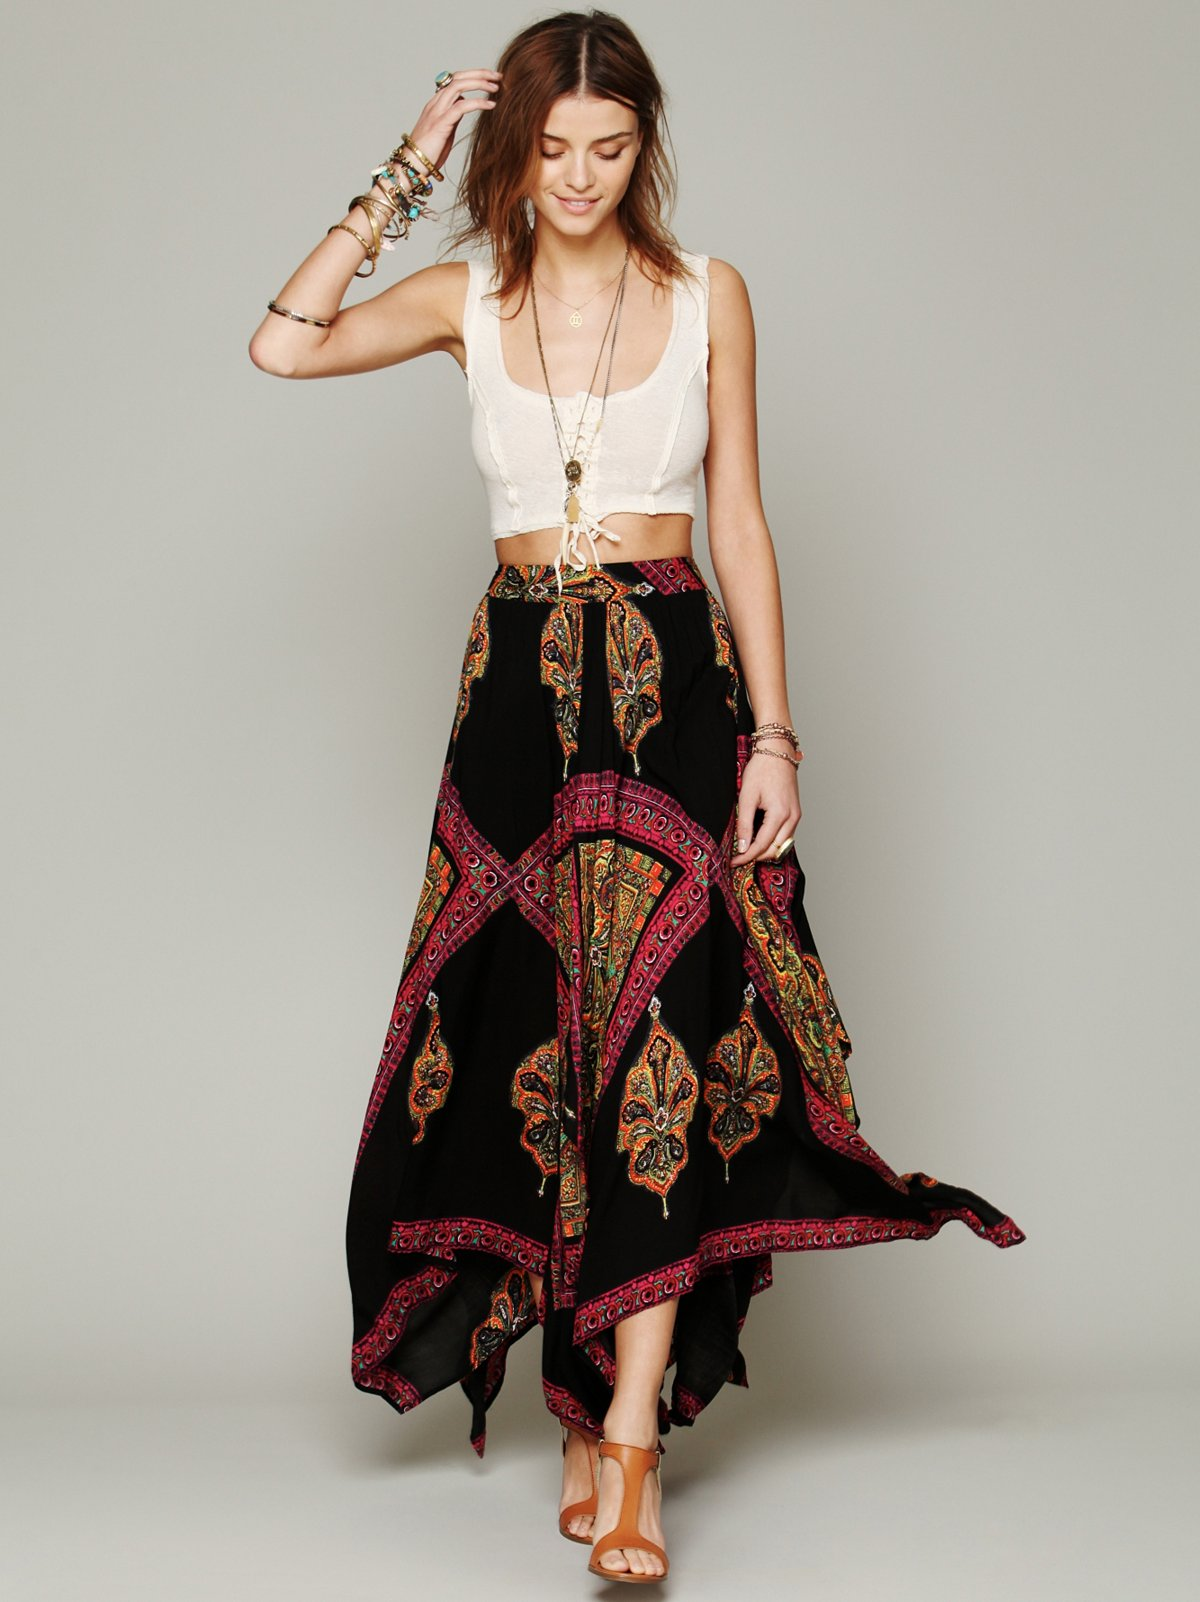 Heart of Gold Skirt